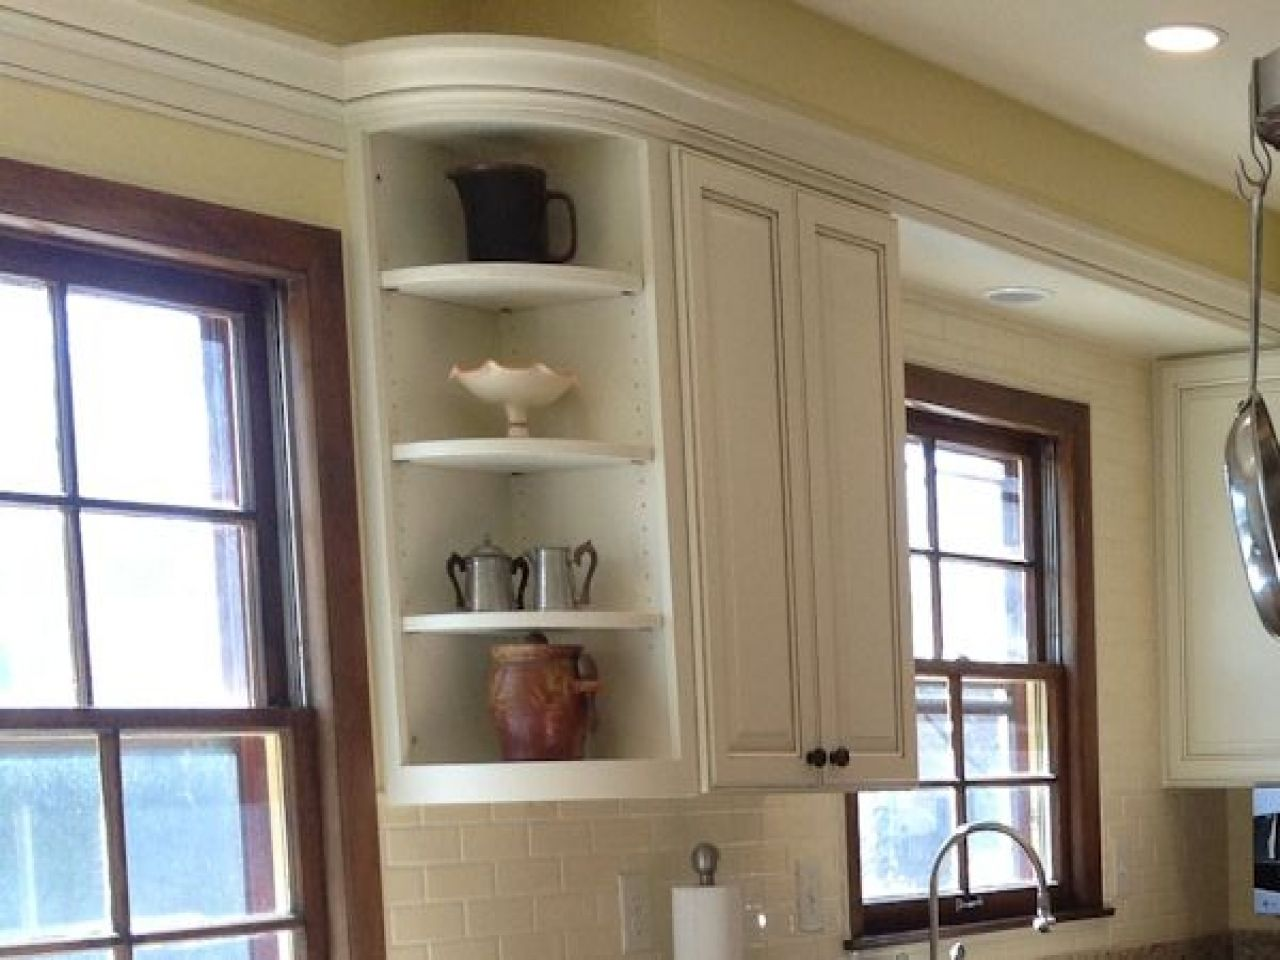 Corner Shelves On Kitchen Cabinets Shelf Unit Kitchen Cabinet Shelves Corner Shelves Kitchen Corner Kitchen Cabinet